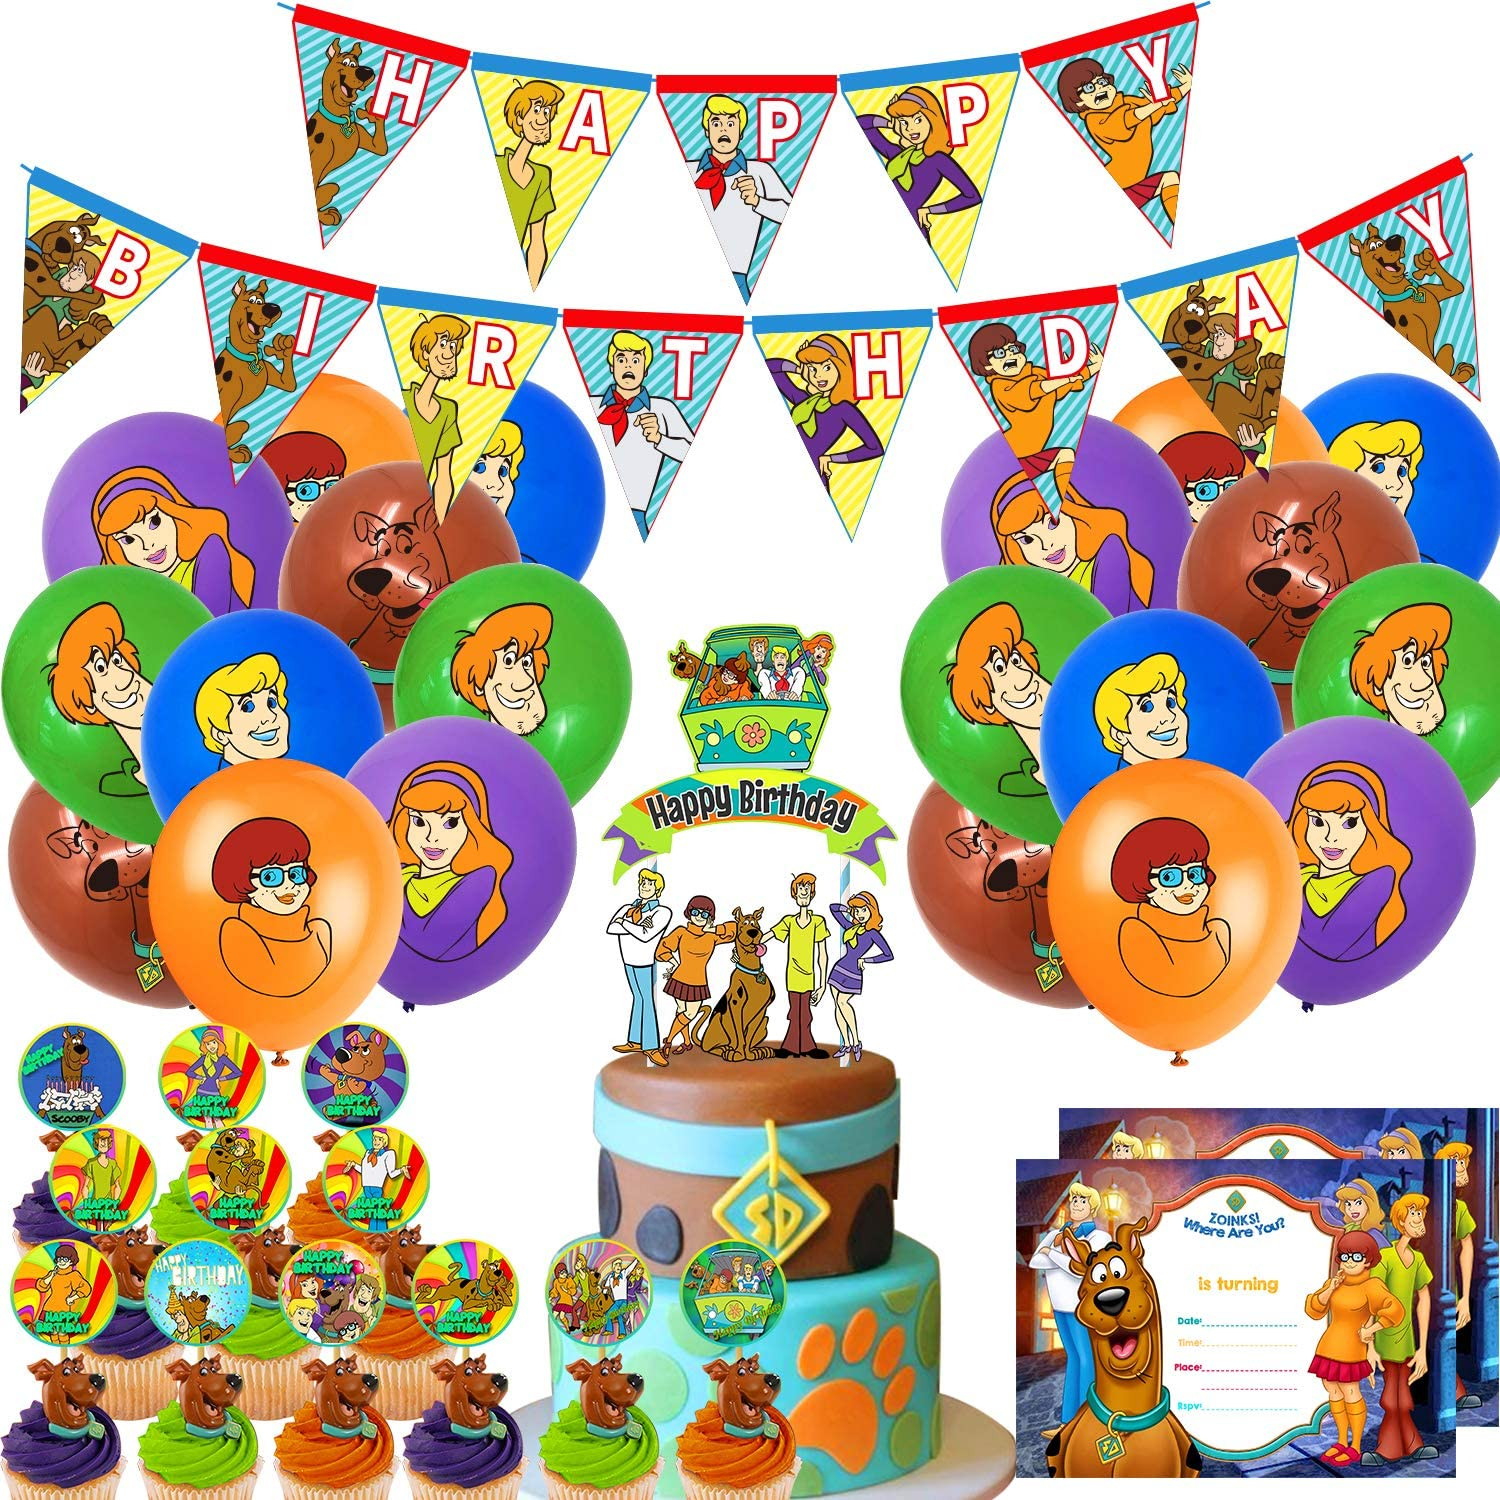 Nelton Birthday Party Supplies For Scooby Doo Includes Banner - Cake Topper - 24 Cupcake Toppers - 20 Balloons - 15 Invitation Cards